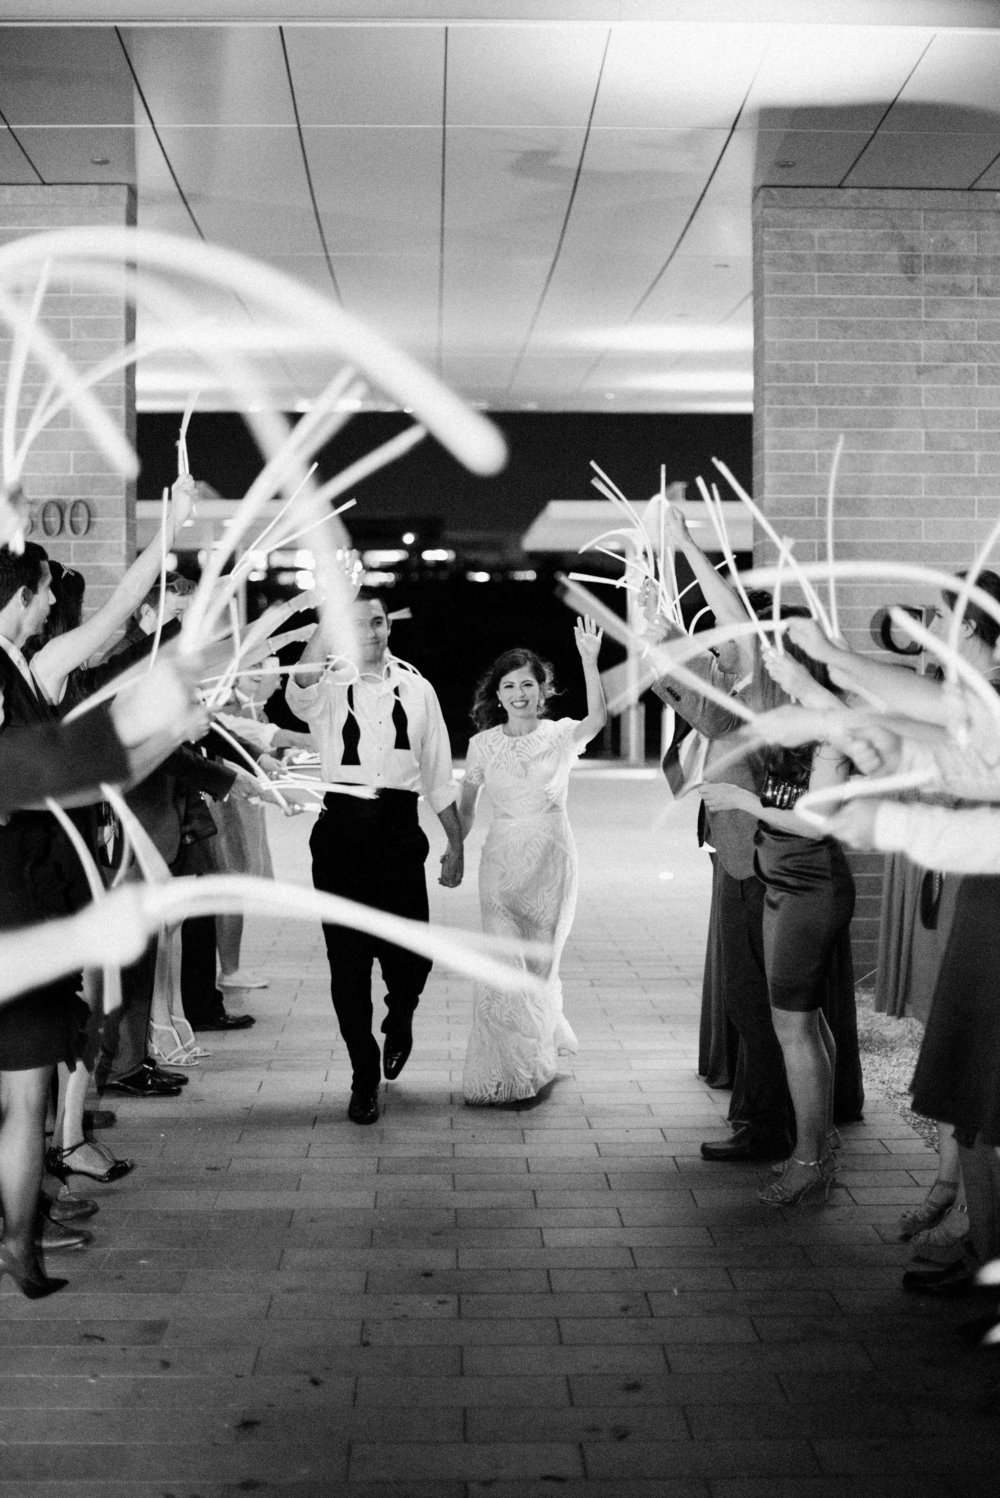 The-Knot-Texas-Magazine-Wedding-Top-Best-Houston-Wedding-Photographer-Fine-Art-Film-Dana-Fernandez-Photography-167.jpg